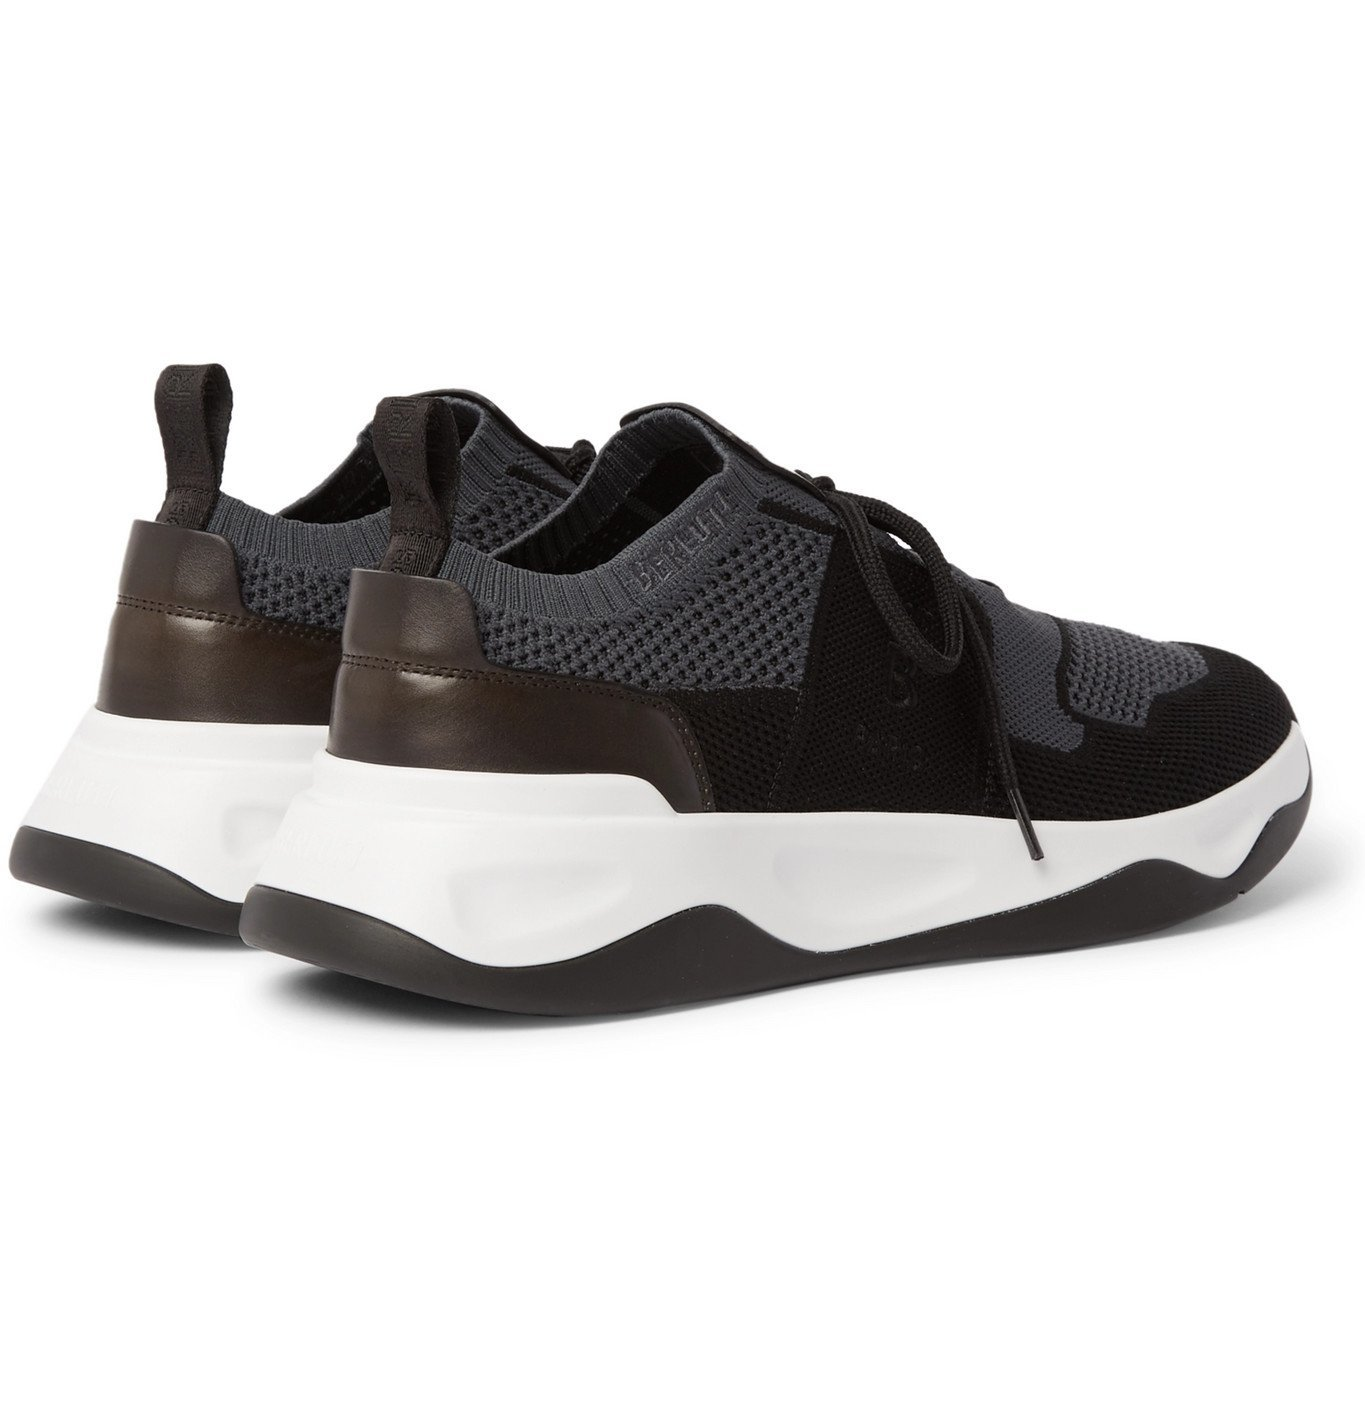 Berluti - Shadow Leather-Trimmed Stretch-Knit Sneakers - Gray